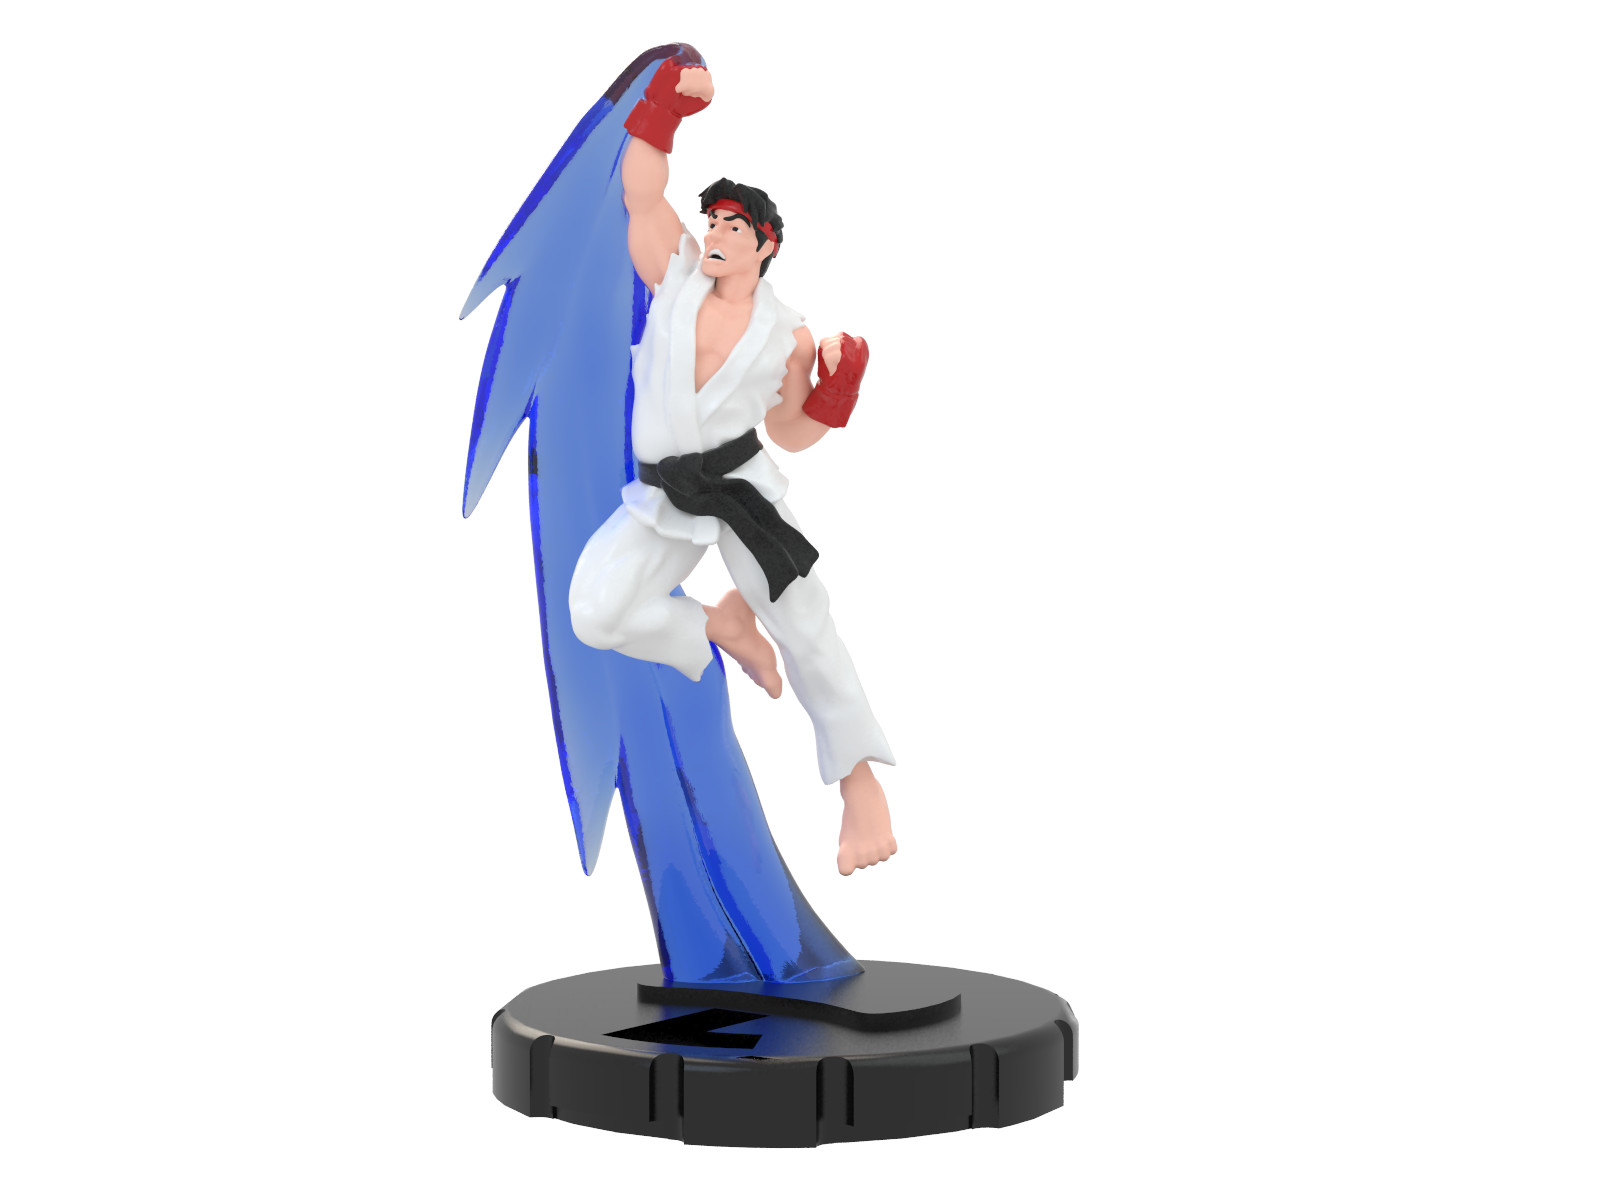 Ben misenar 021 ryu uppercut rc 1